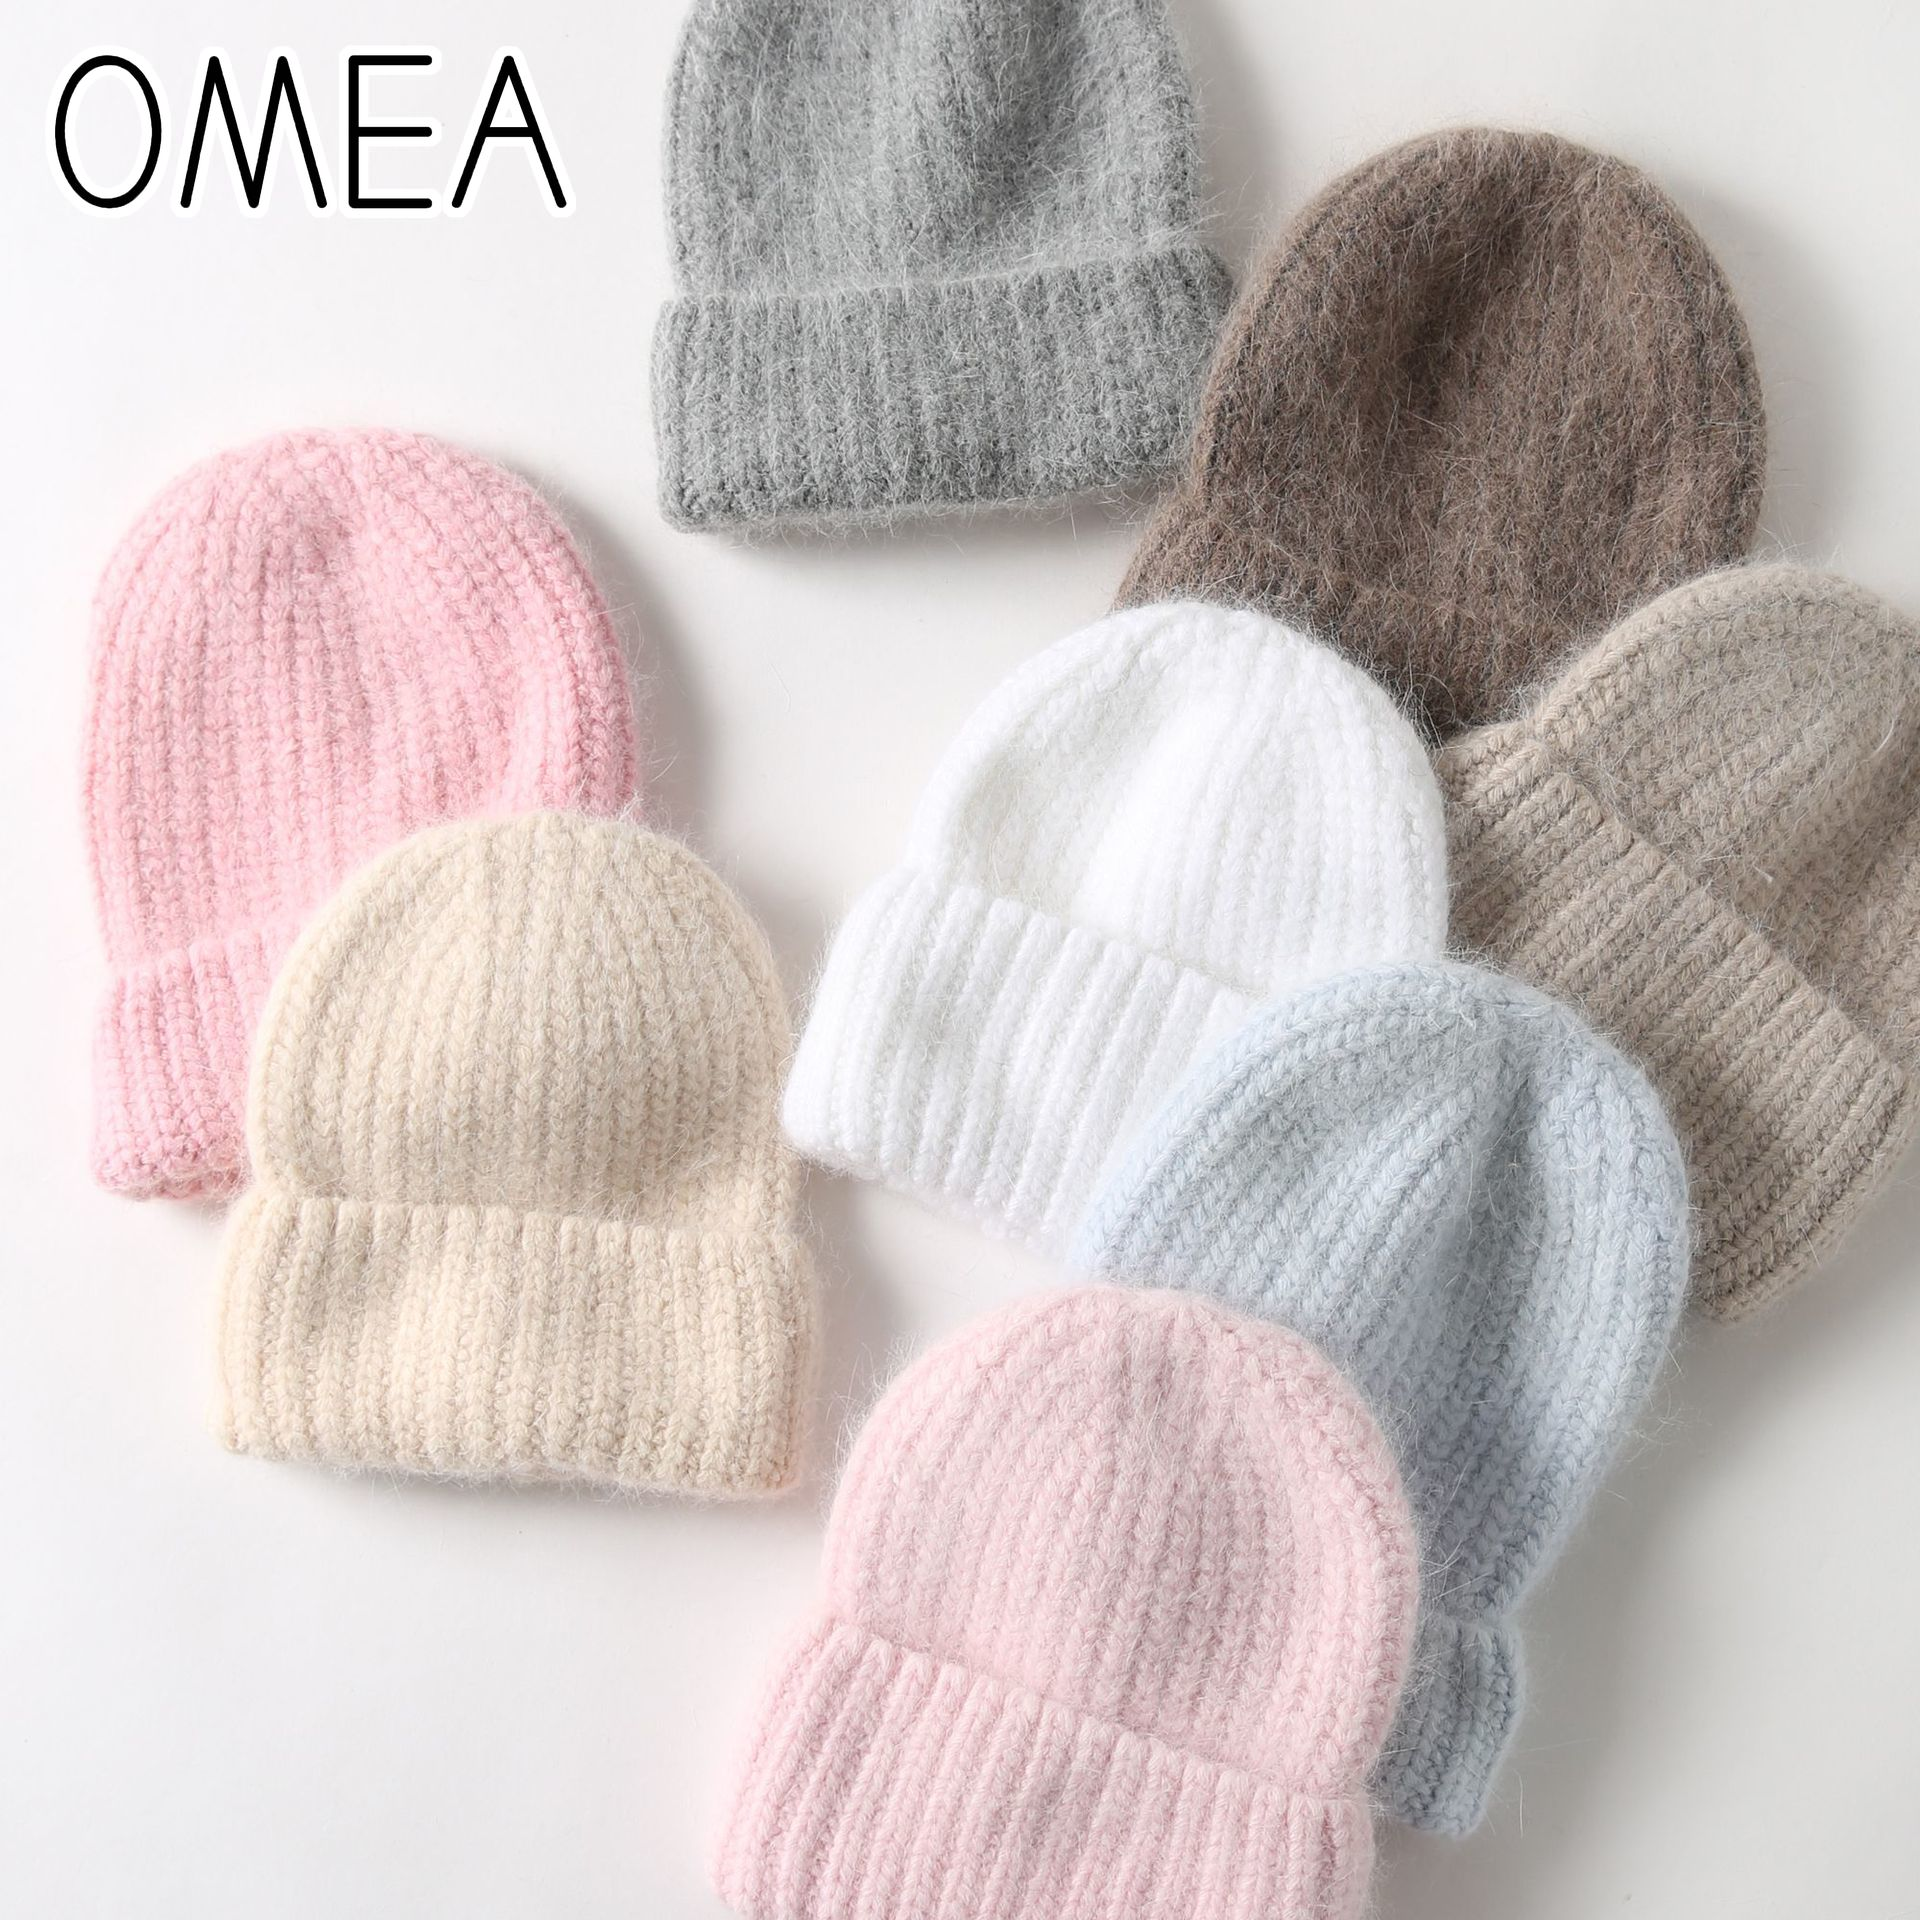 OMEA Angora Rabbit Fur Winter Hat Women Wool Hat Men Gift Fashion Knitting Cotton Hat Men Gift Beanie Cashmere Cap Solid Color